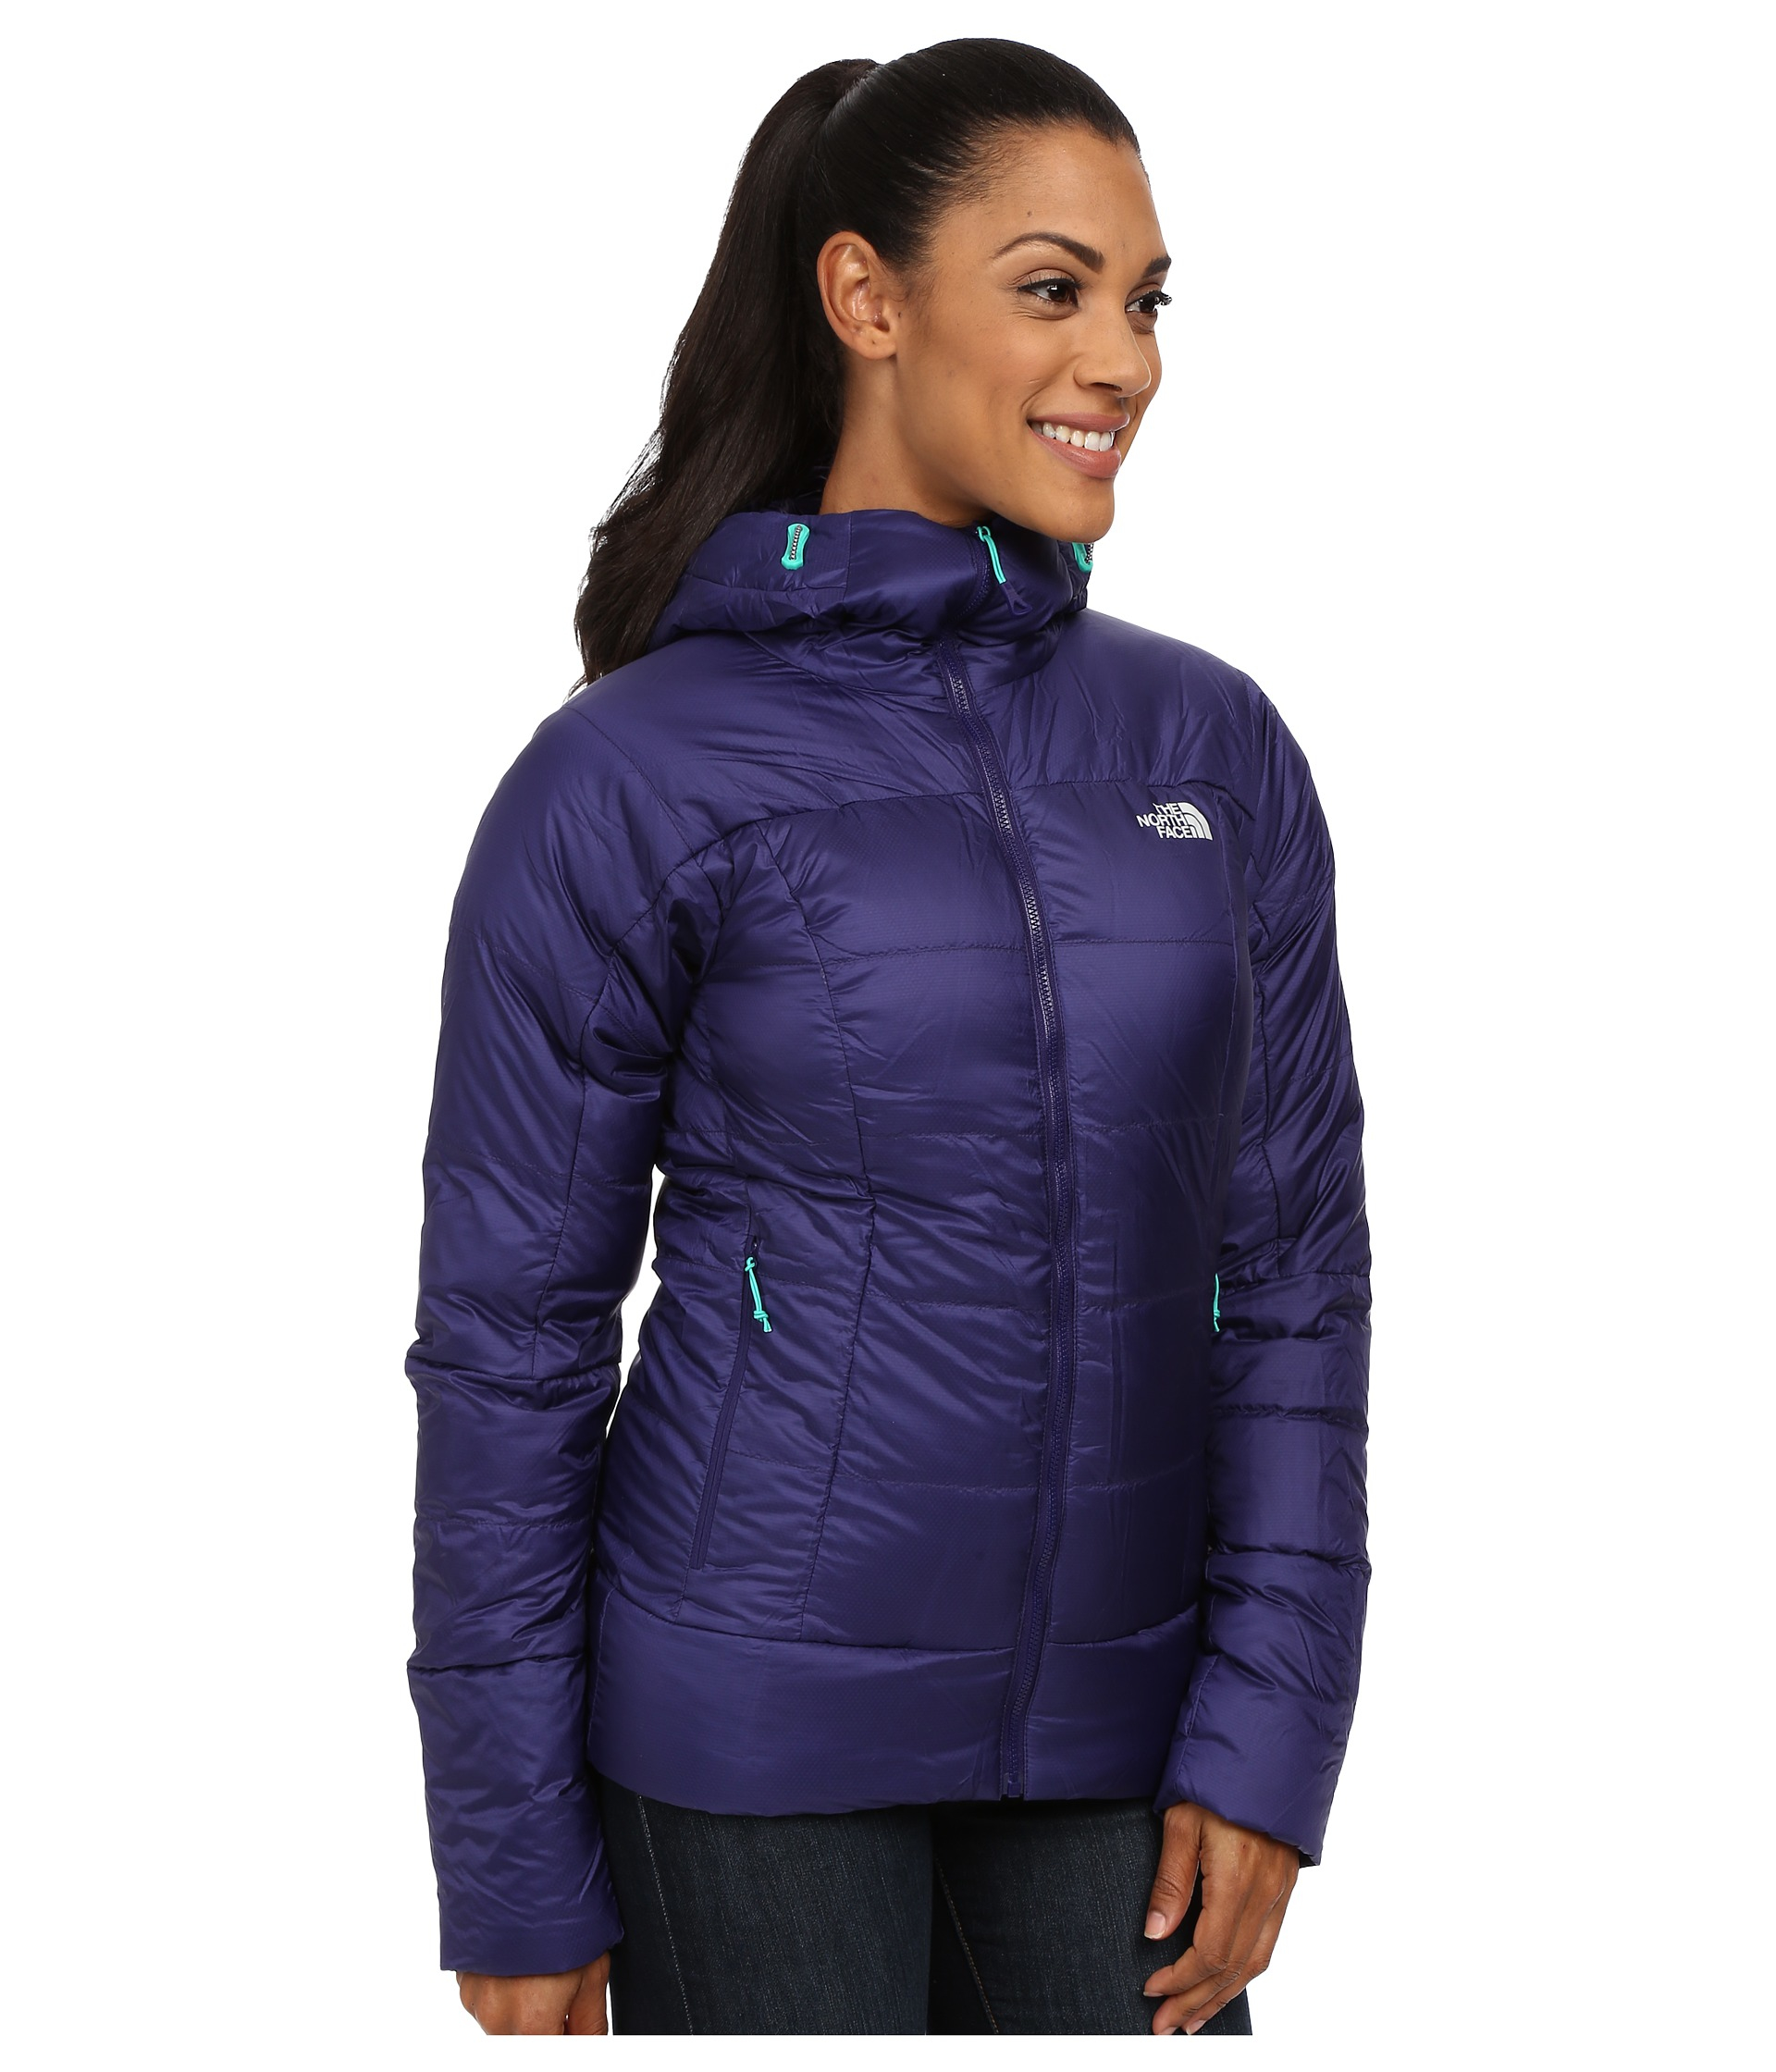 a3b2c779f7a1 Lyst - The North Face Prospectus Down Jacket in Purple